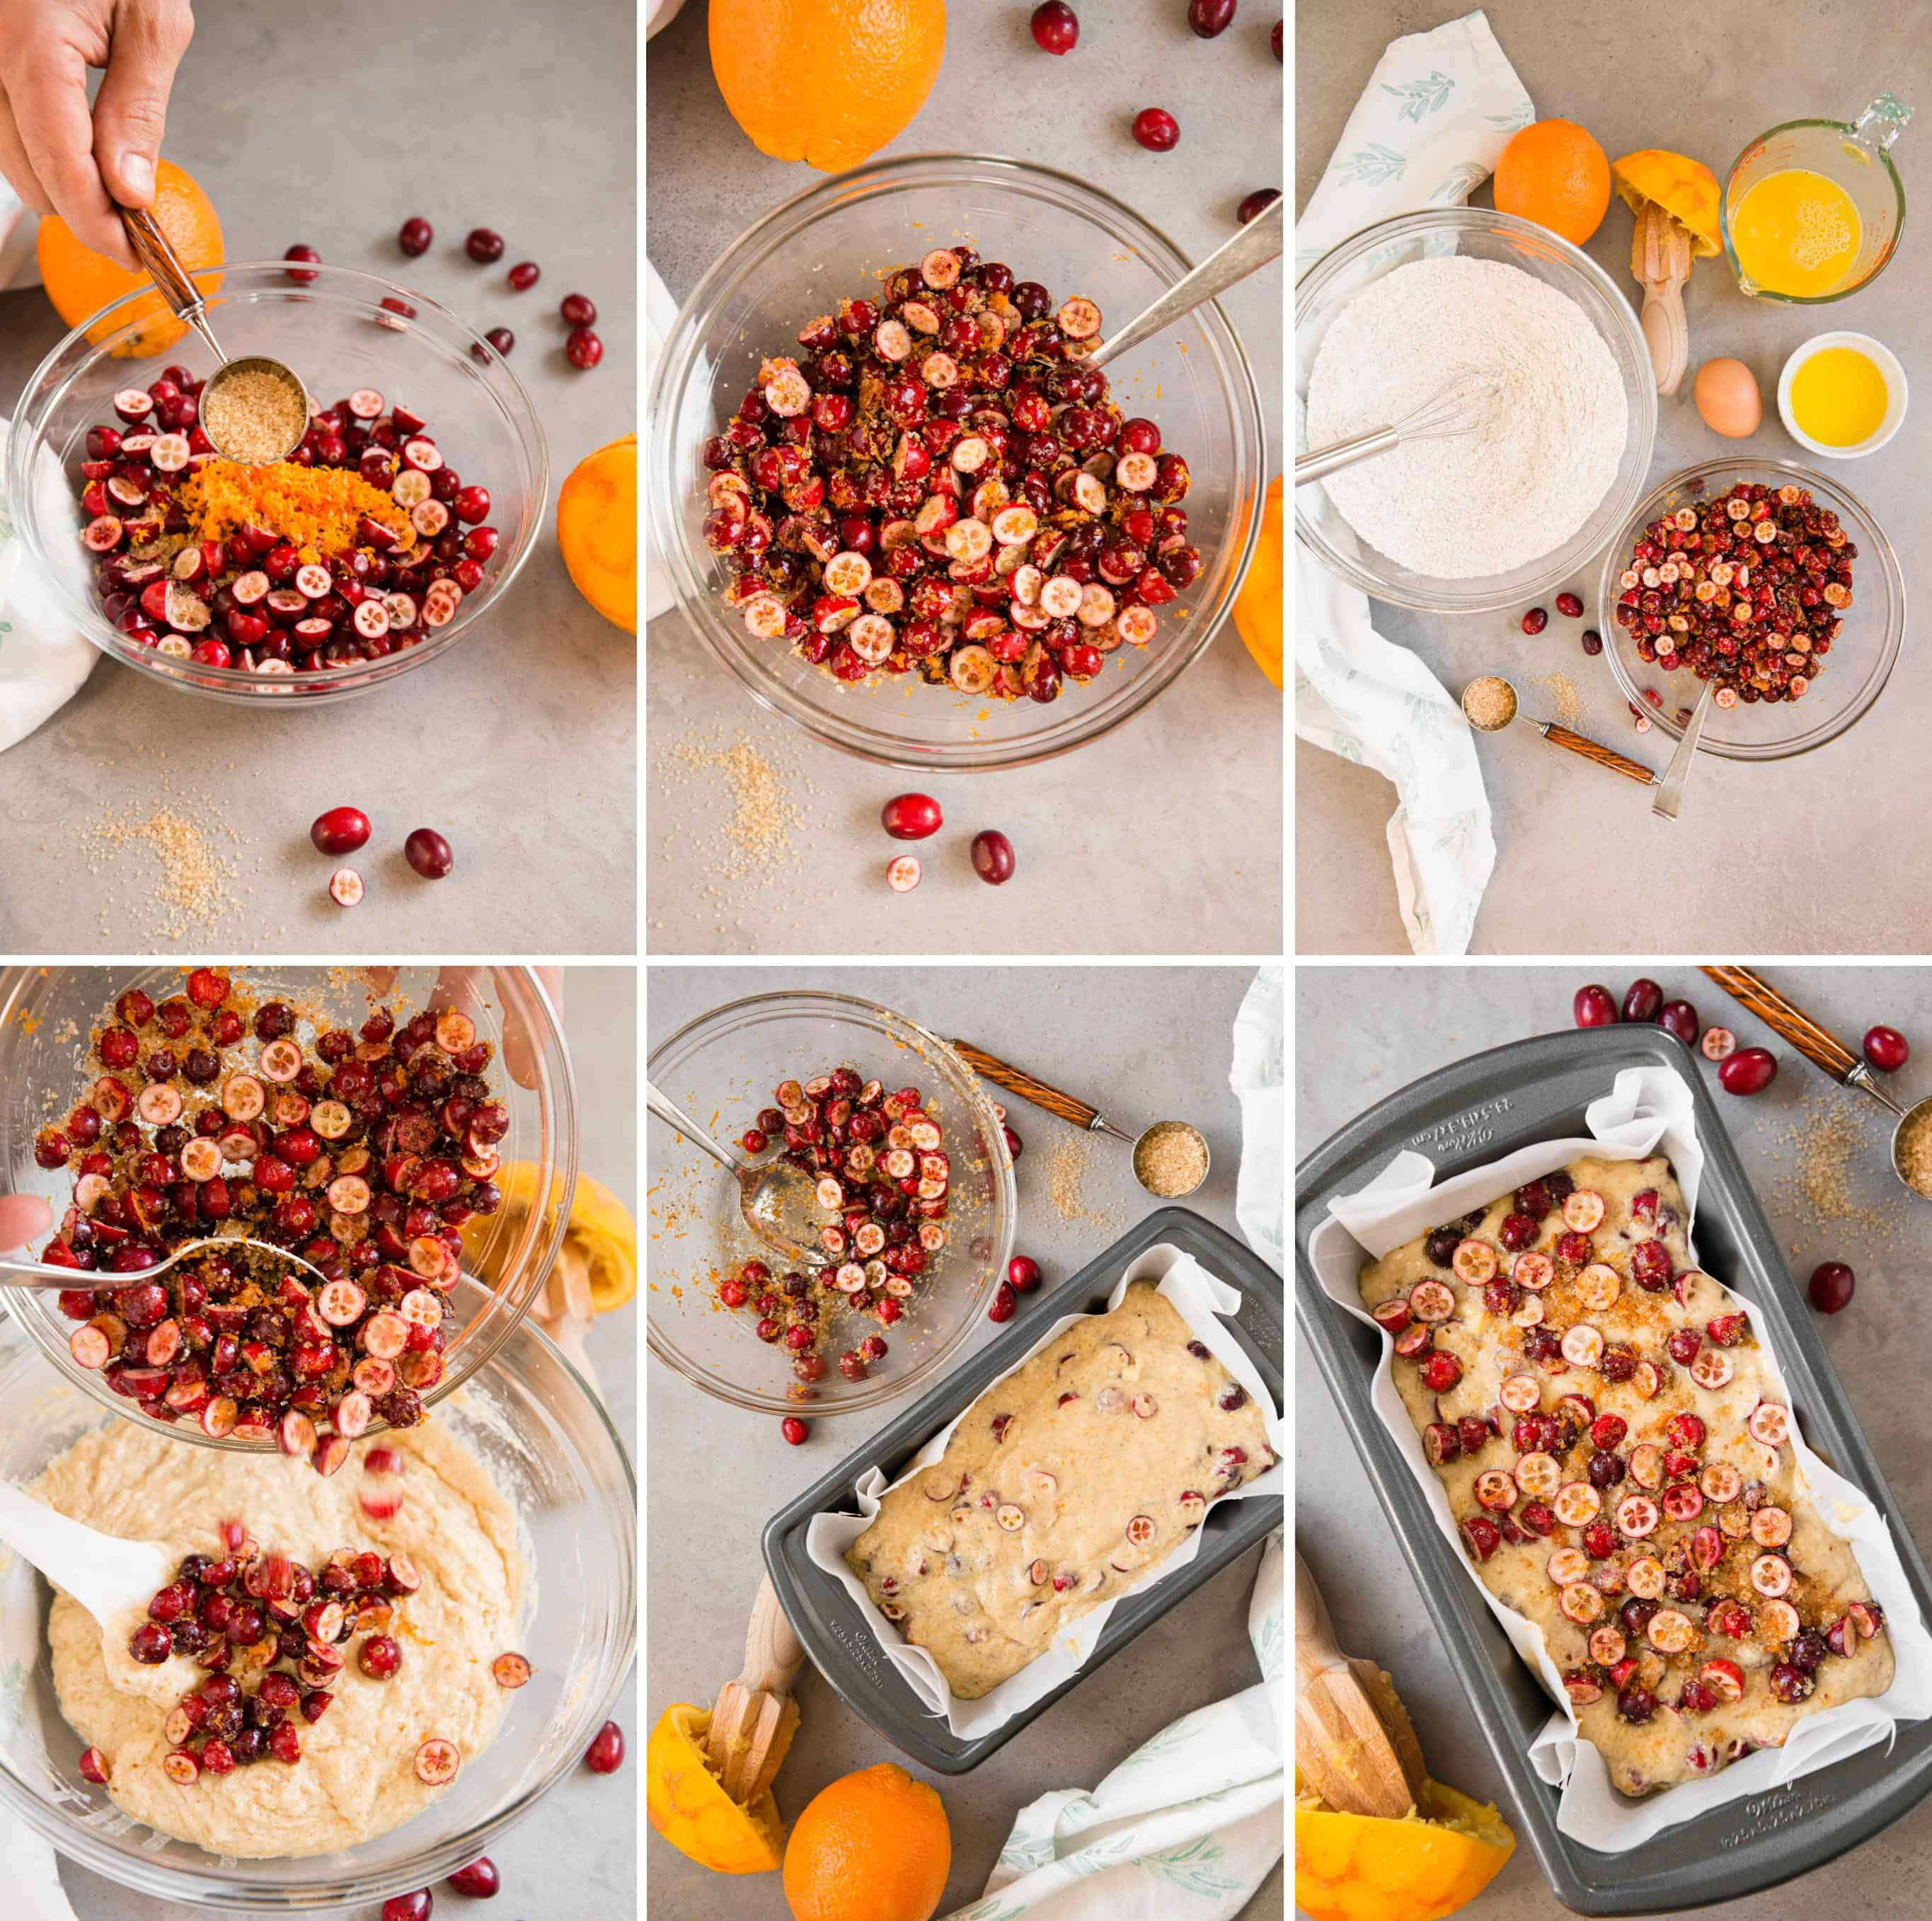 step by step process photos for how to make cranberry orange bread